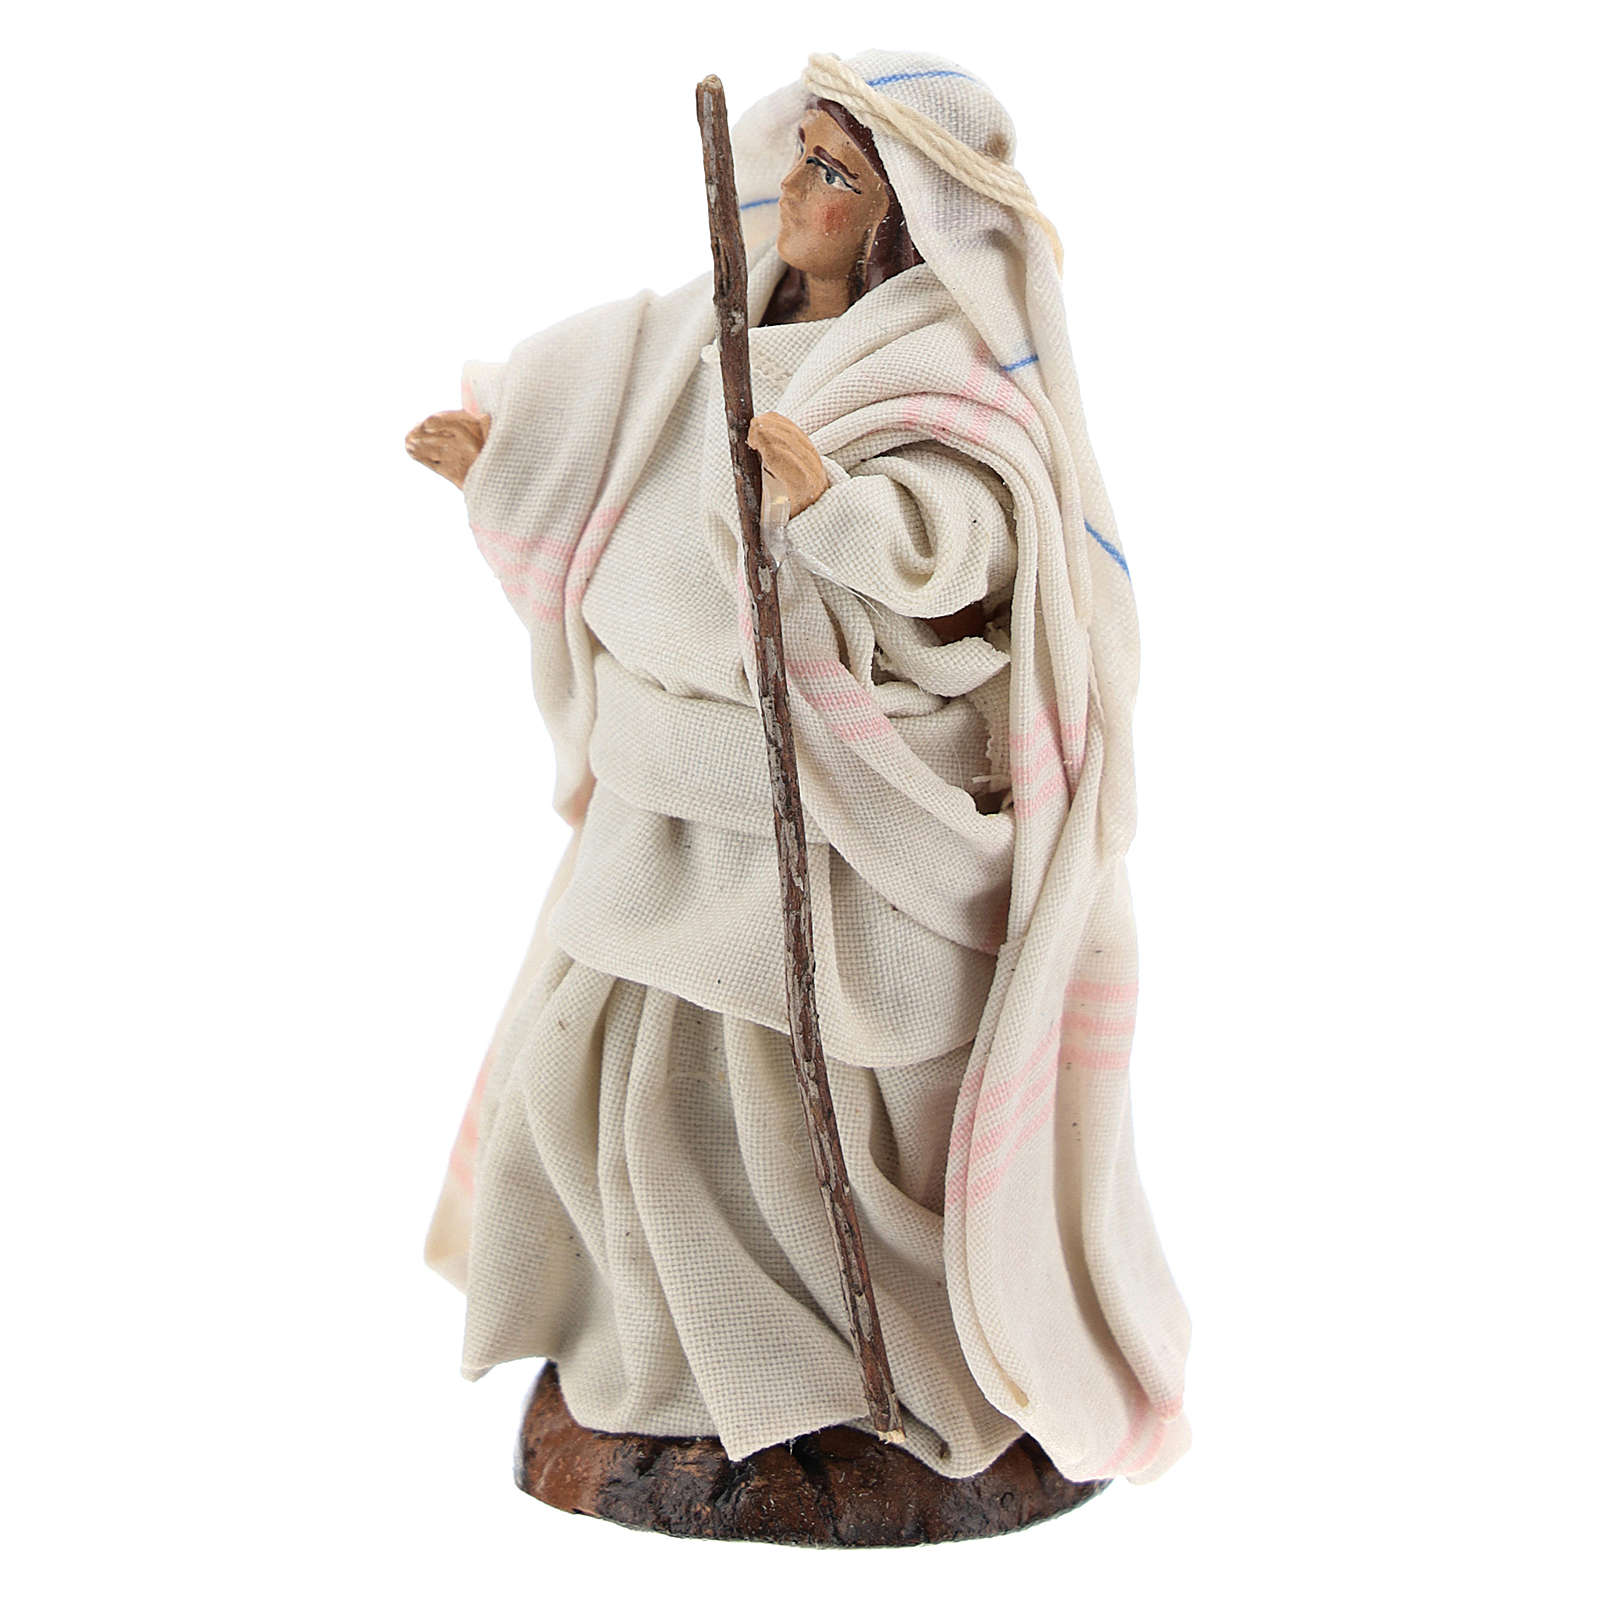 Neapolitan nativity figurine, Arabian woman with stick, 8cm 4